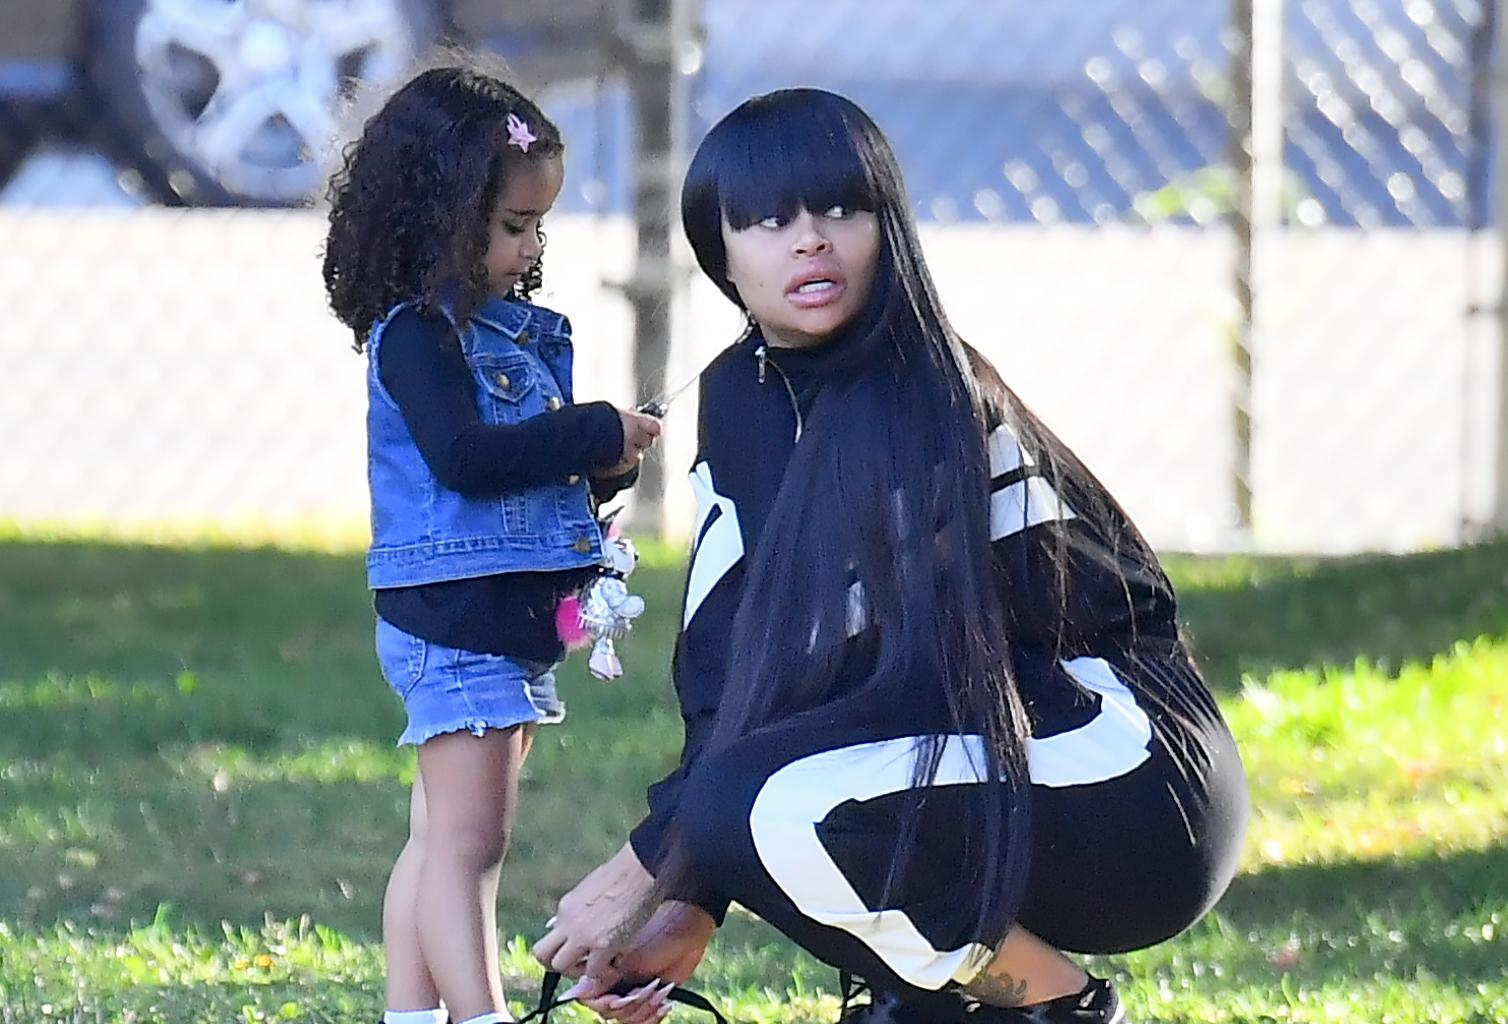 Blac Chyna Makes Fans Happy With New Pics With Dream Kardashian At The Zoo